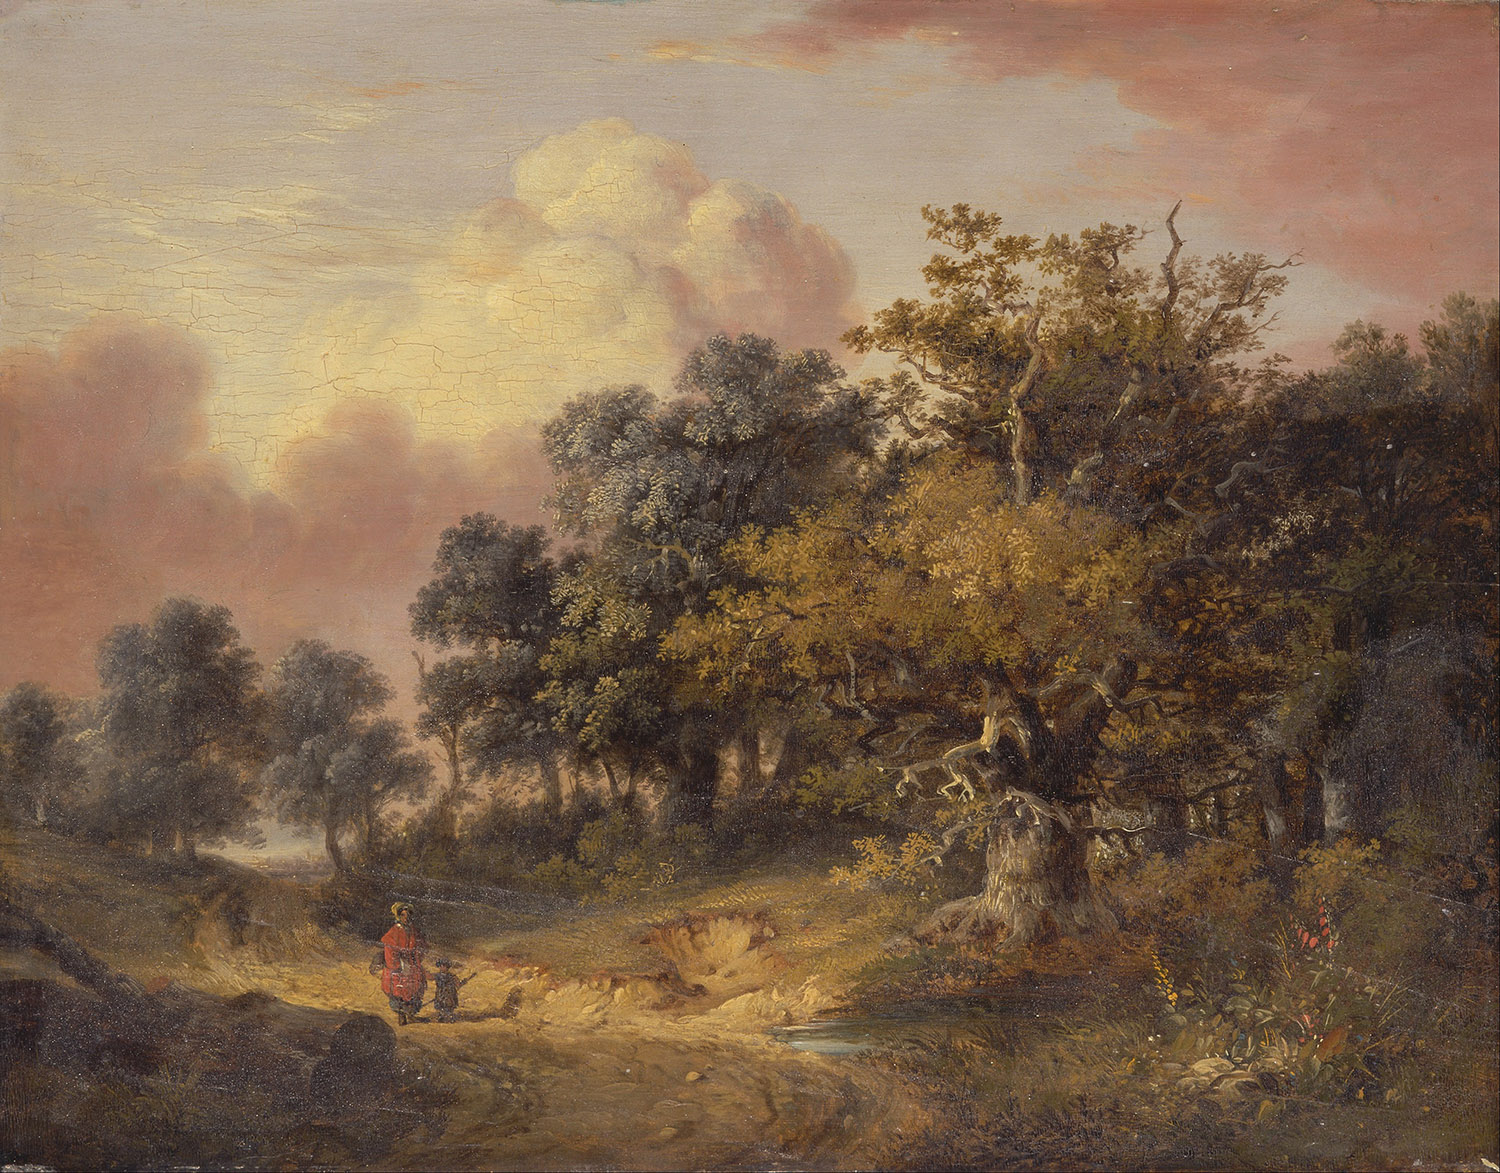 Wooded Landscape with Woman and Child Walking Down a Road, Robert Ladbrooke, c.1820.